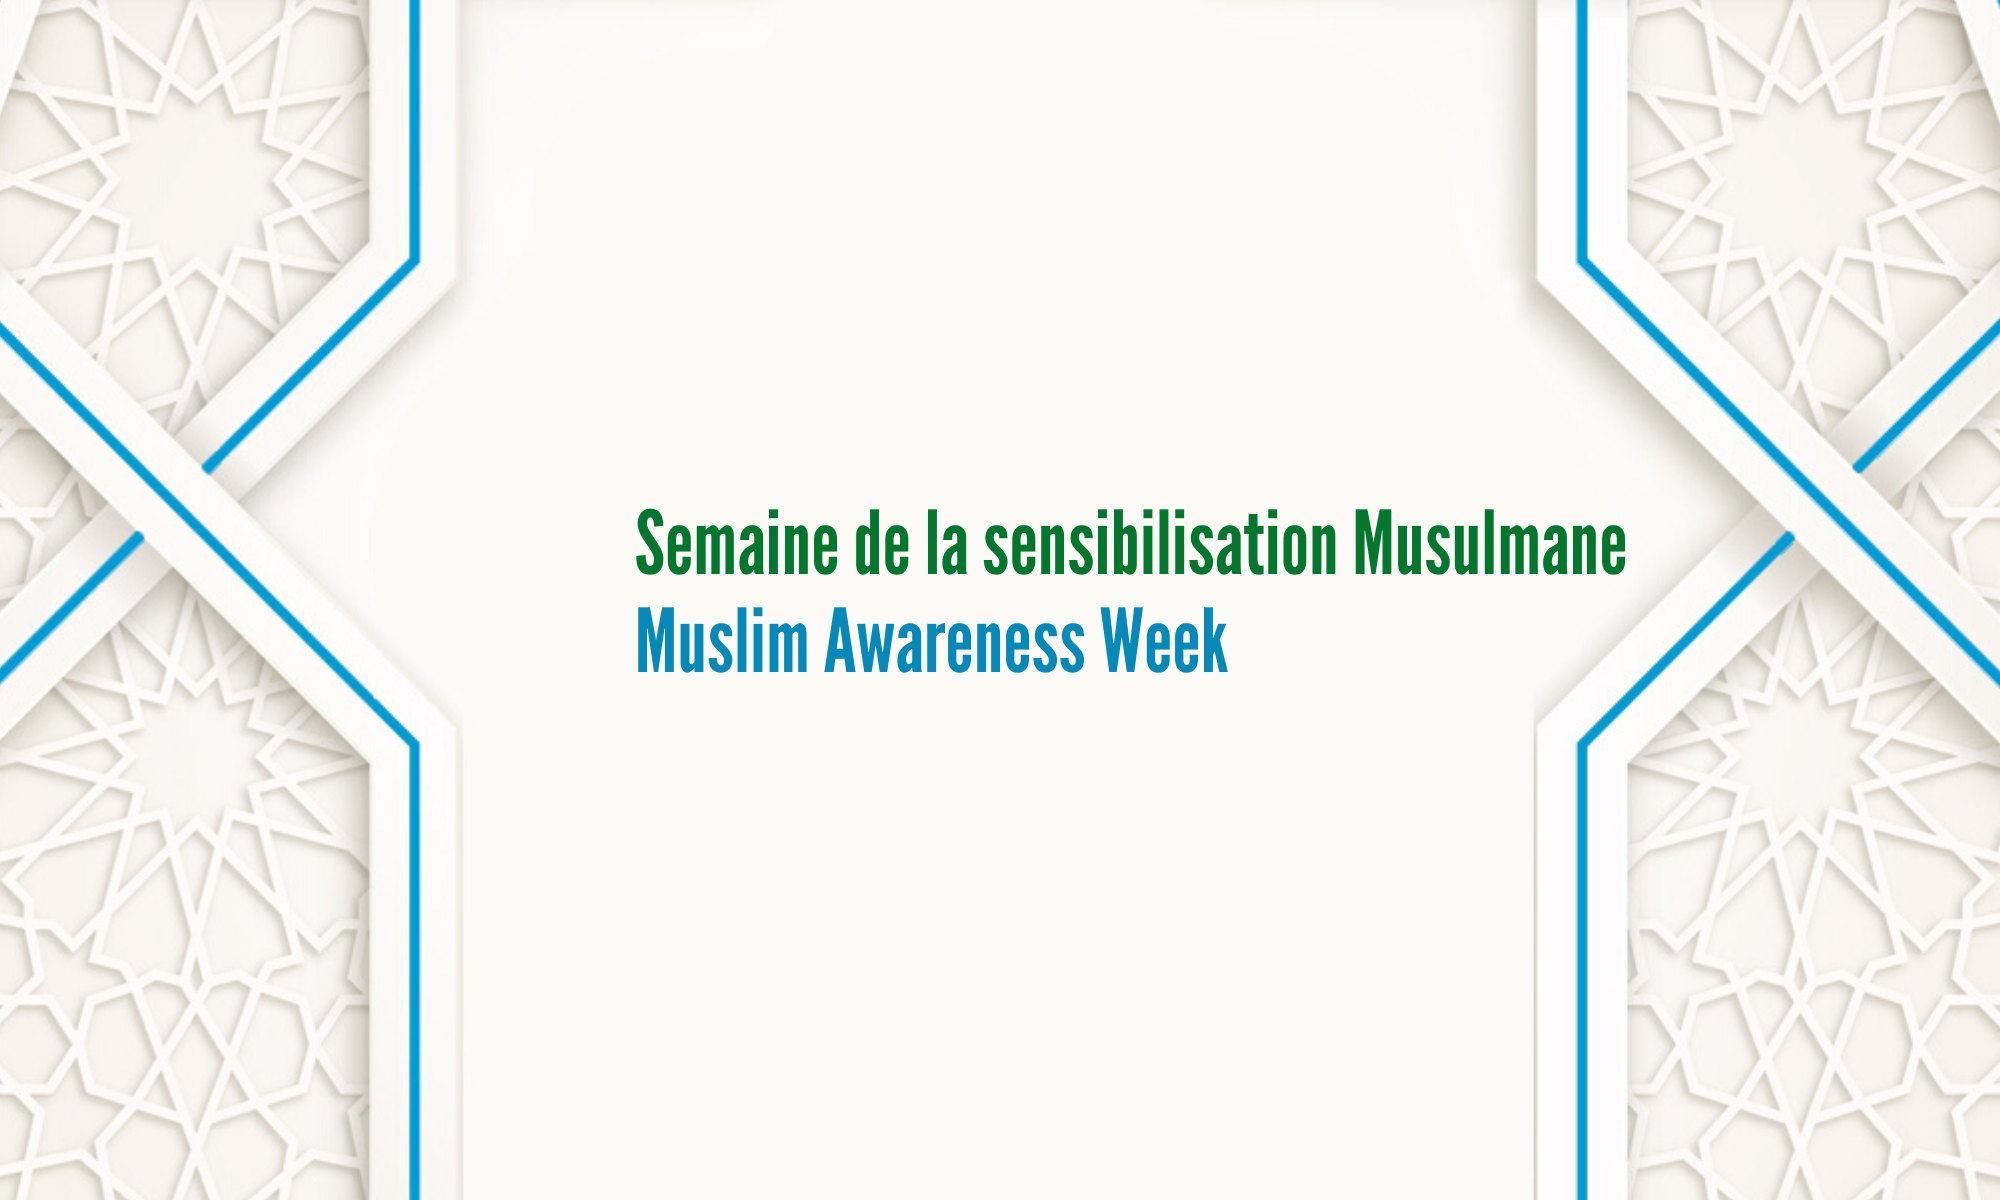 Semaine de Sensibilisation Musulmane / Muslim Awareness Week